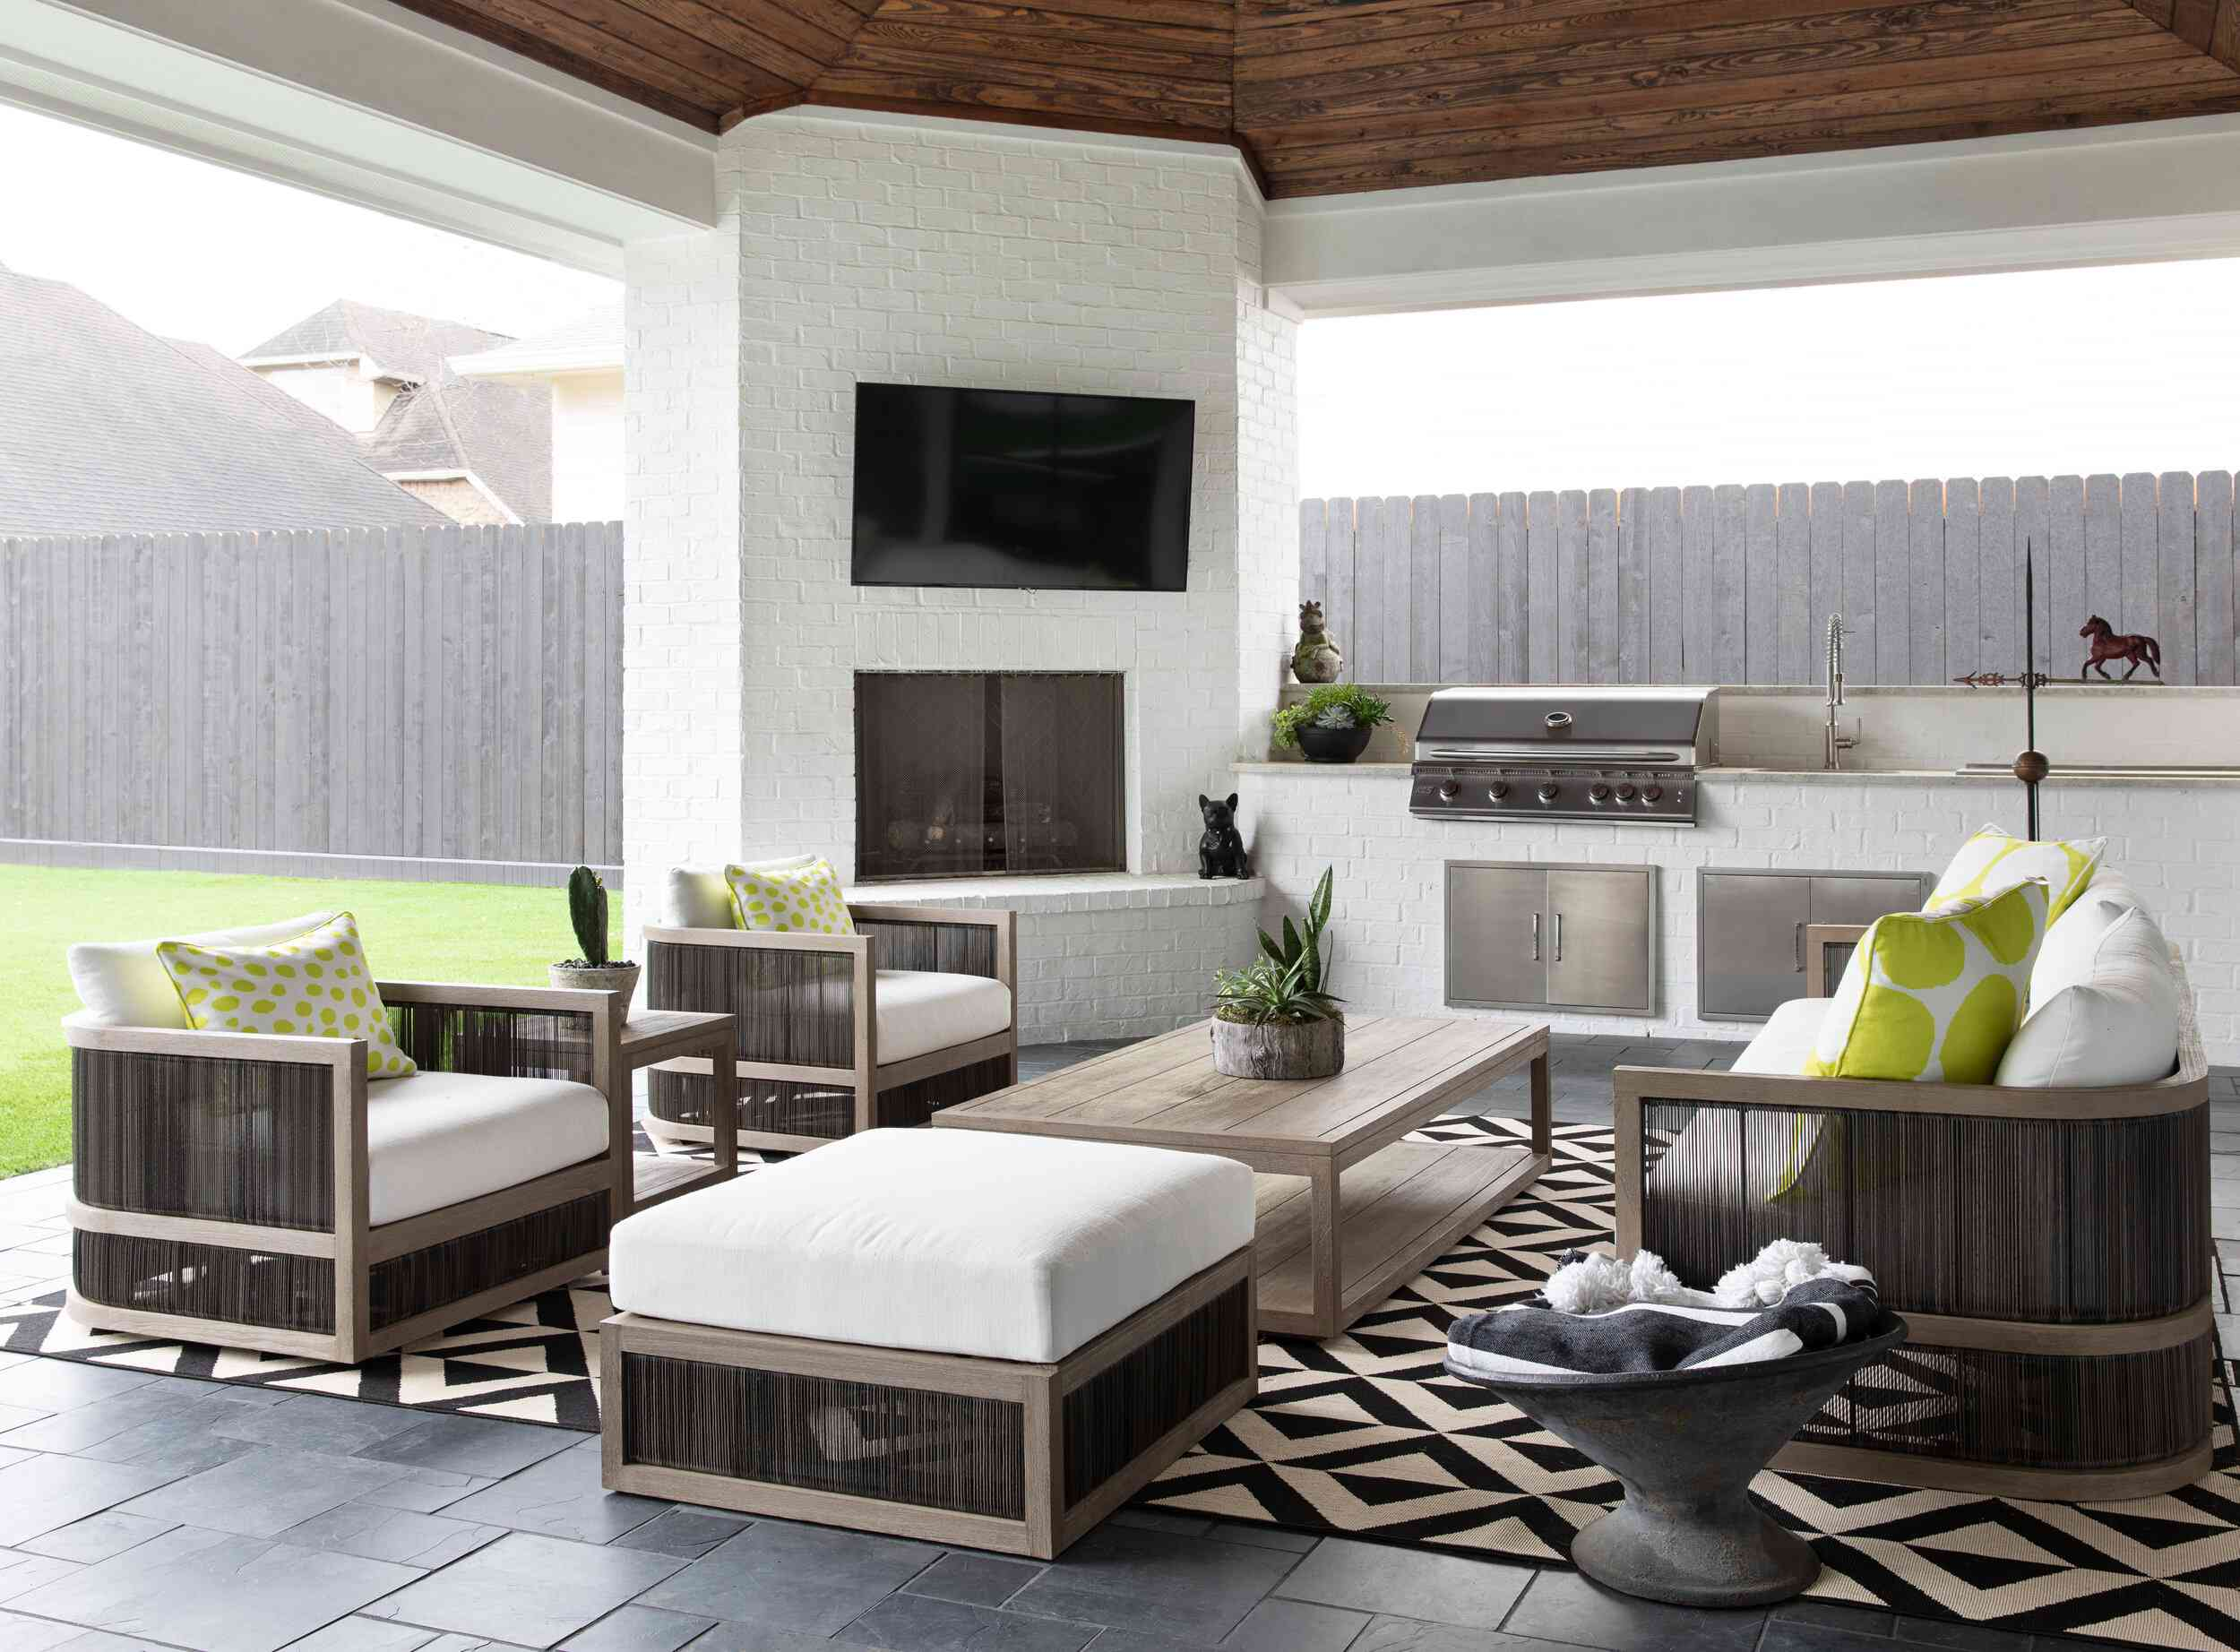 A covered porch with an outdoor fireplace, an outdoor kitchen, and a large TV